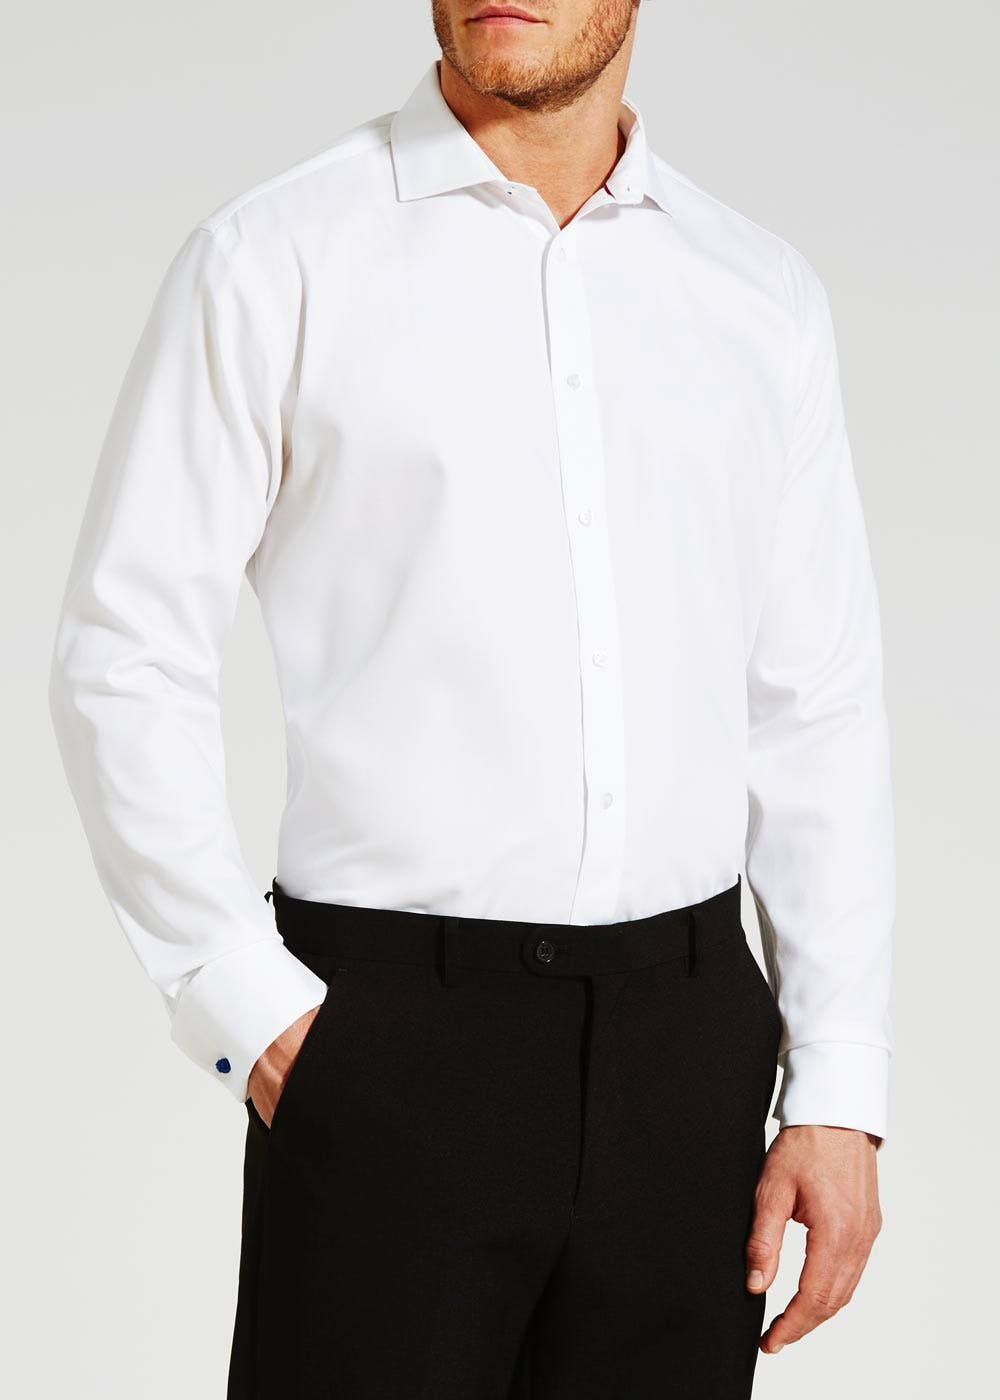 Non-Iron Dress Shirts. Maintain a sharp, crisp look all day long in our non-iron dress shirts. Designed to resist wrinkles, our collection of men's non-iron shirts are both stylish and functional.